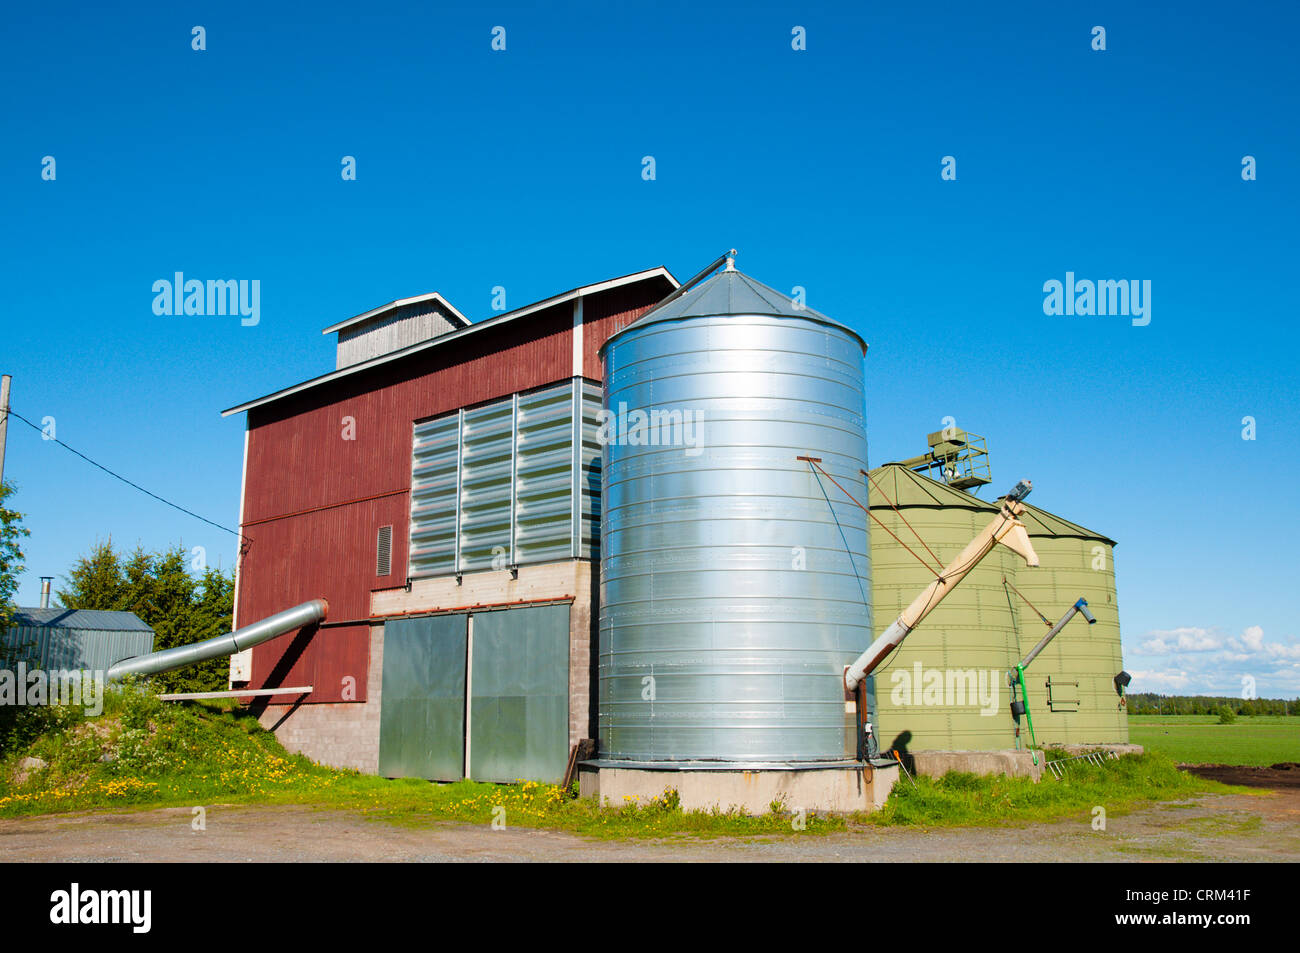 Agricultural silos used to bulk store grain Hyvelä district Pori Finland Europe - Stock Image